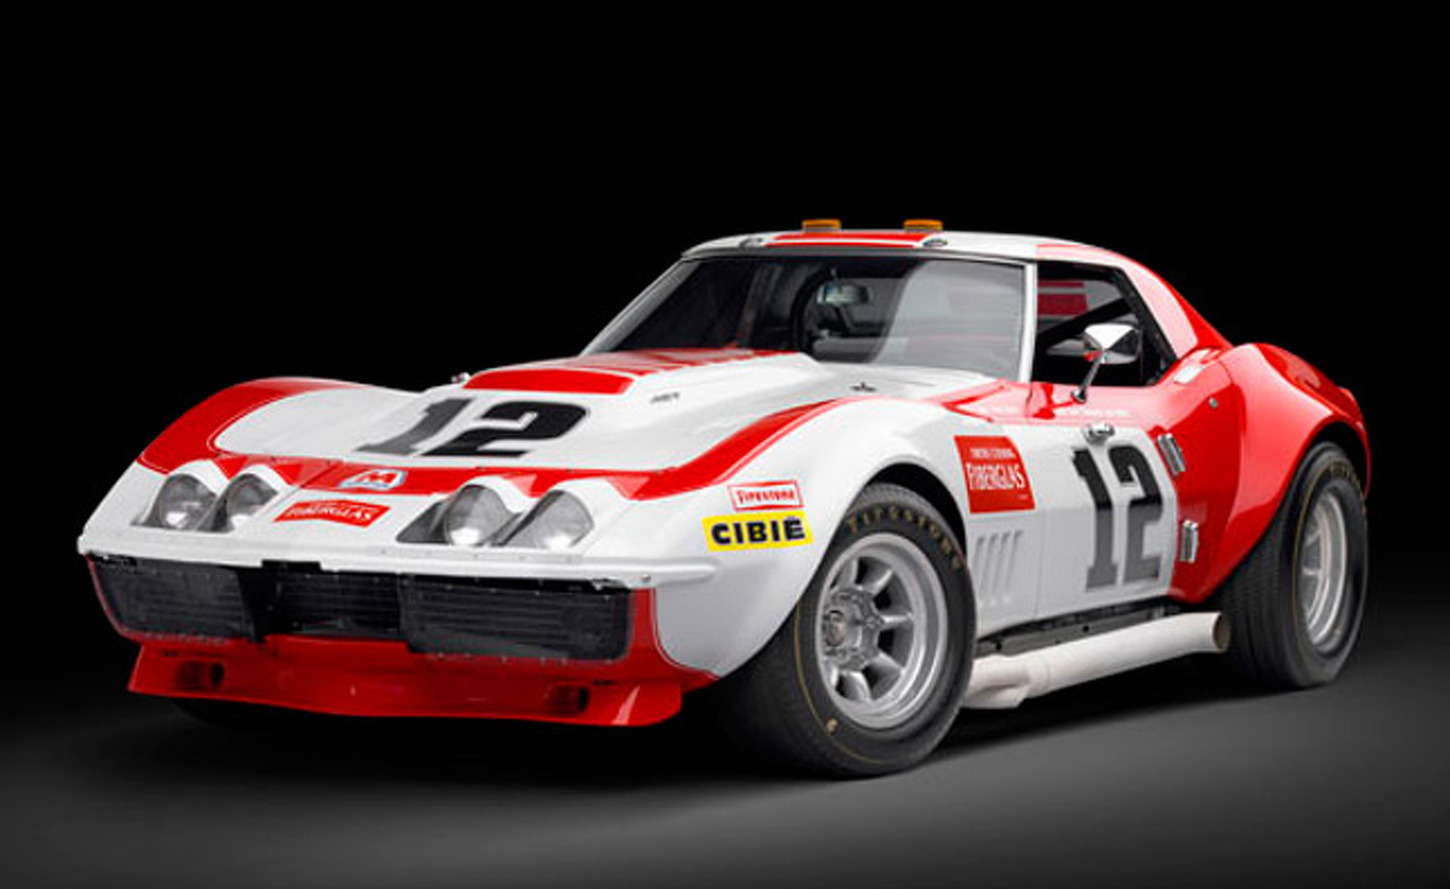 1968 Corvette L-88 Racer Heading to the Auction Block